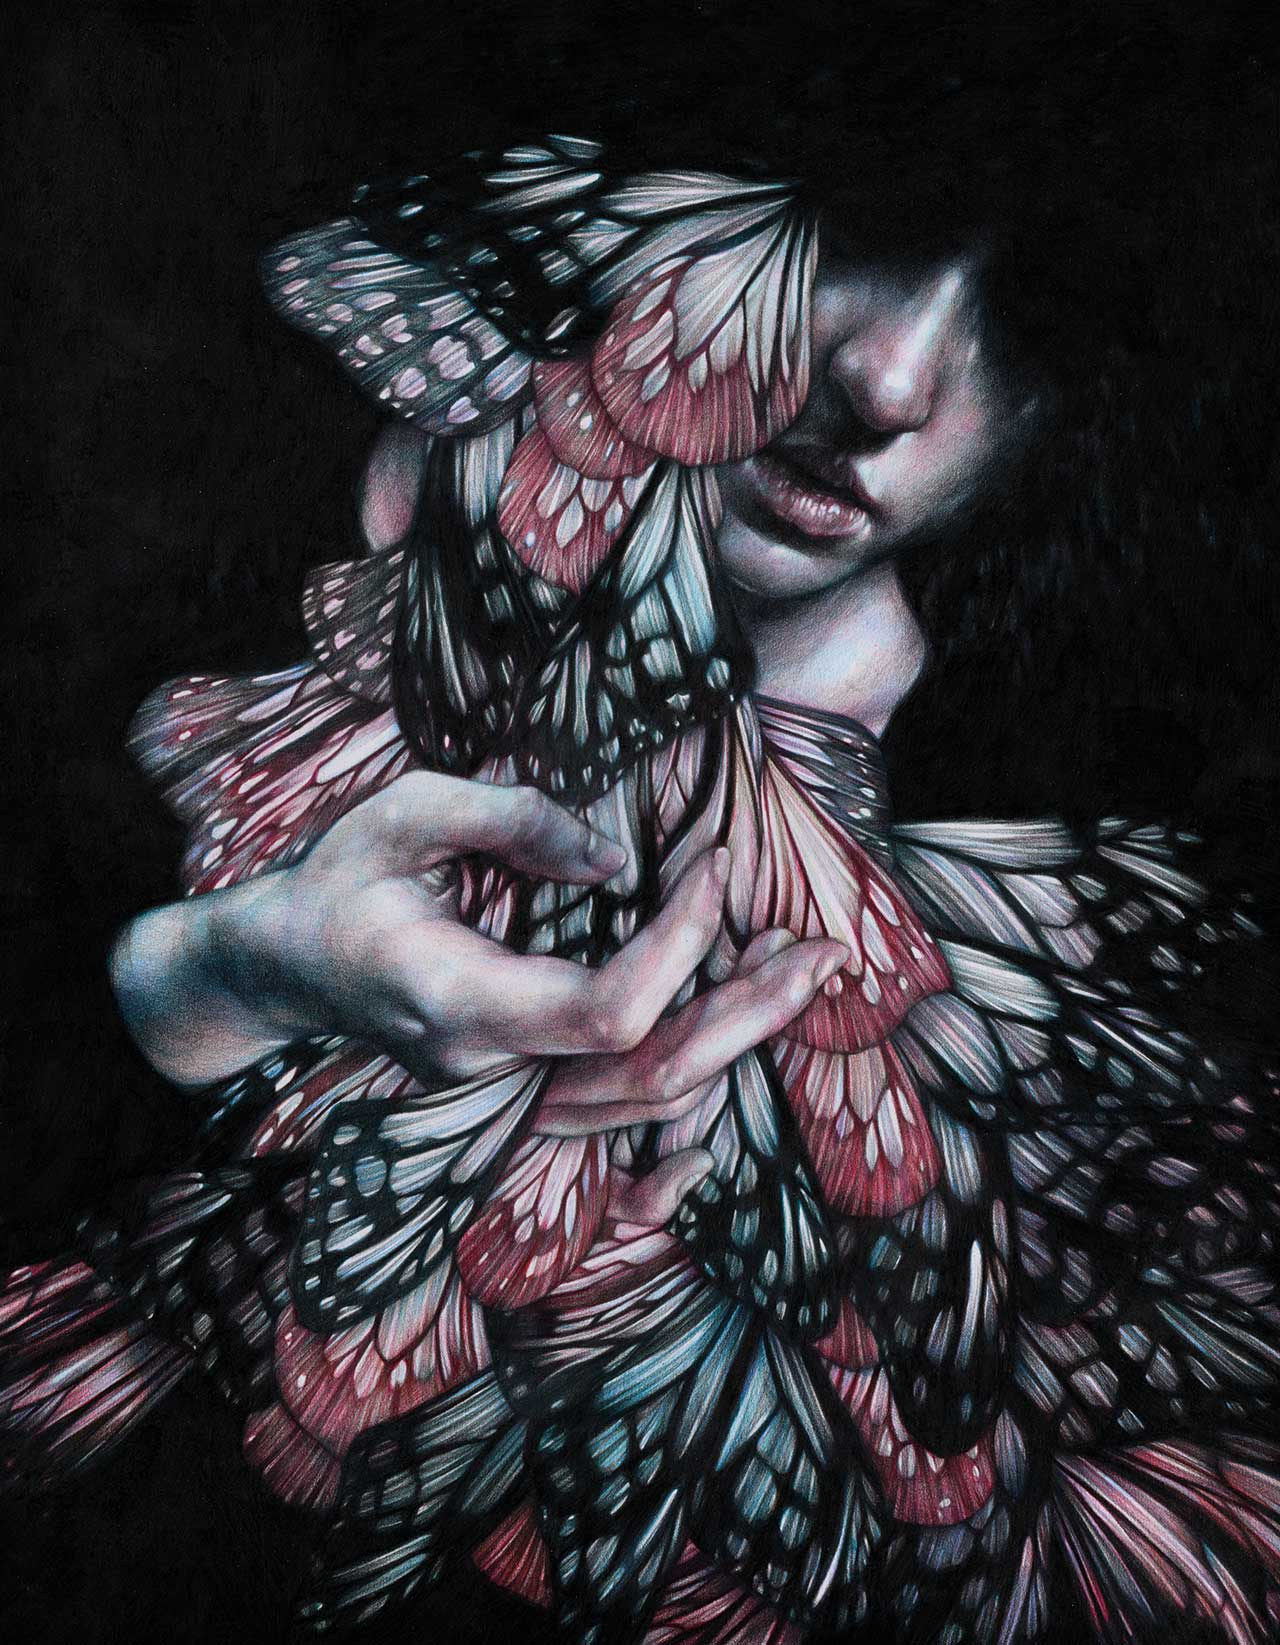 Marco Mazzoni, Passage, 2017. Colored pencils on paper, 38 x 48cm. © Marco Mazzoni.